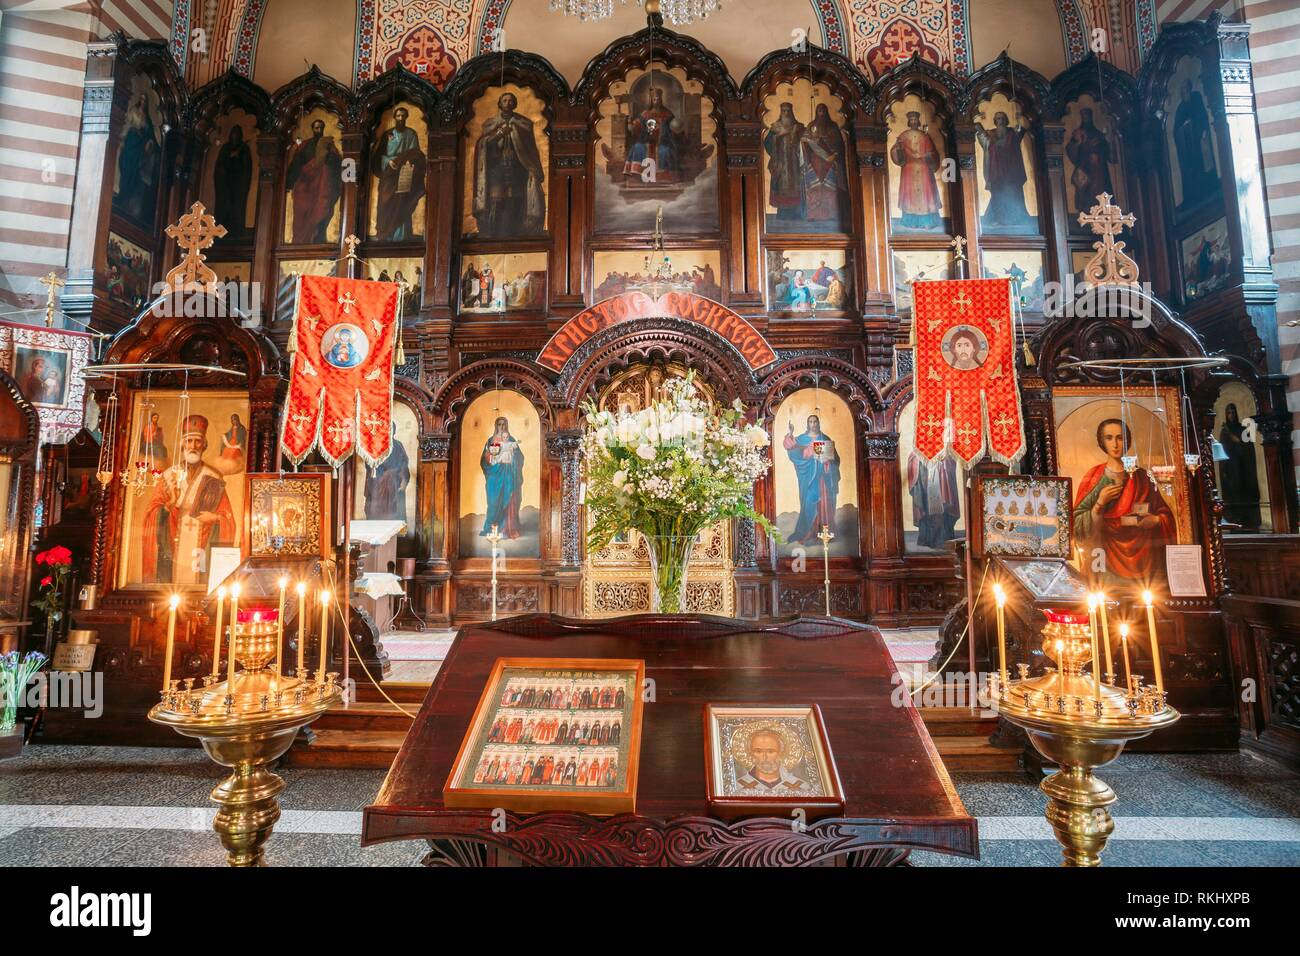 Vilnius, Lithuania: The Lectern Or Analogion With Two Icons Placed For Veneration By The Faithful In Orthodox Church Of St. Nicholas. - Stock Image